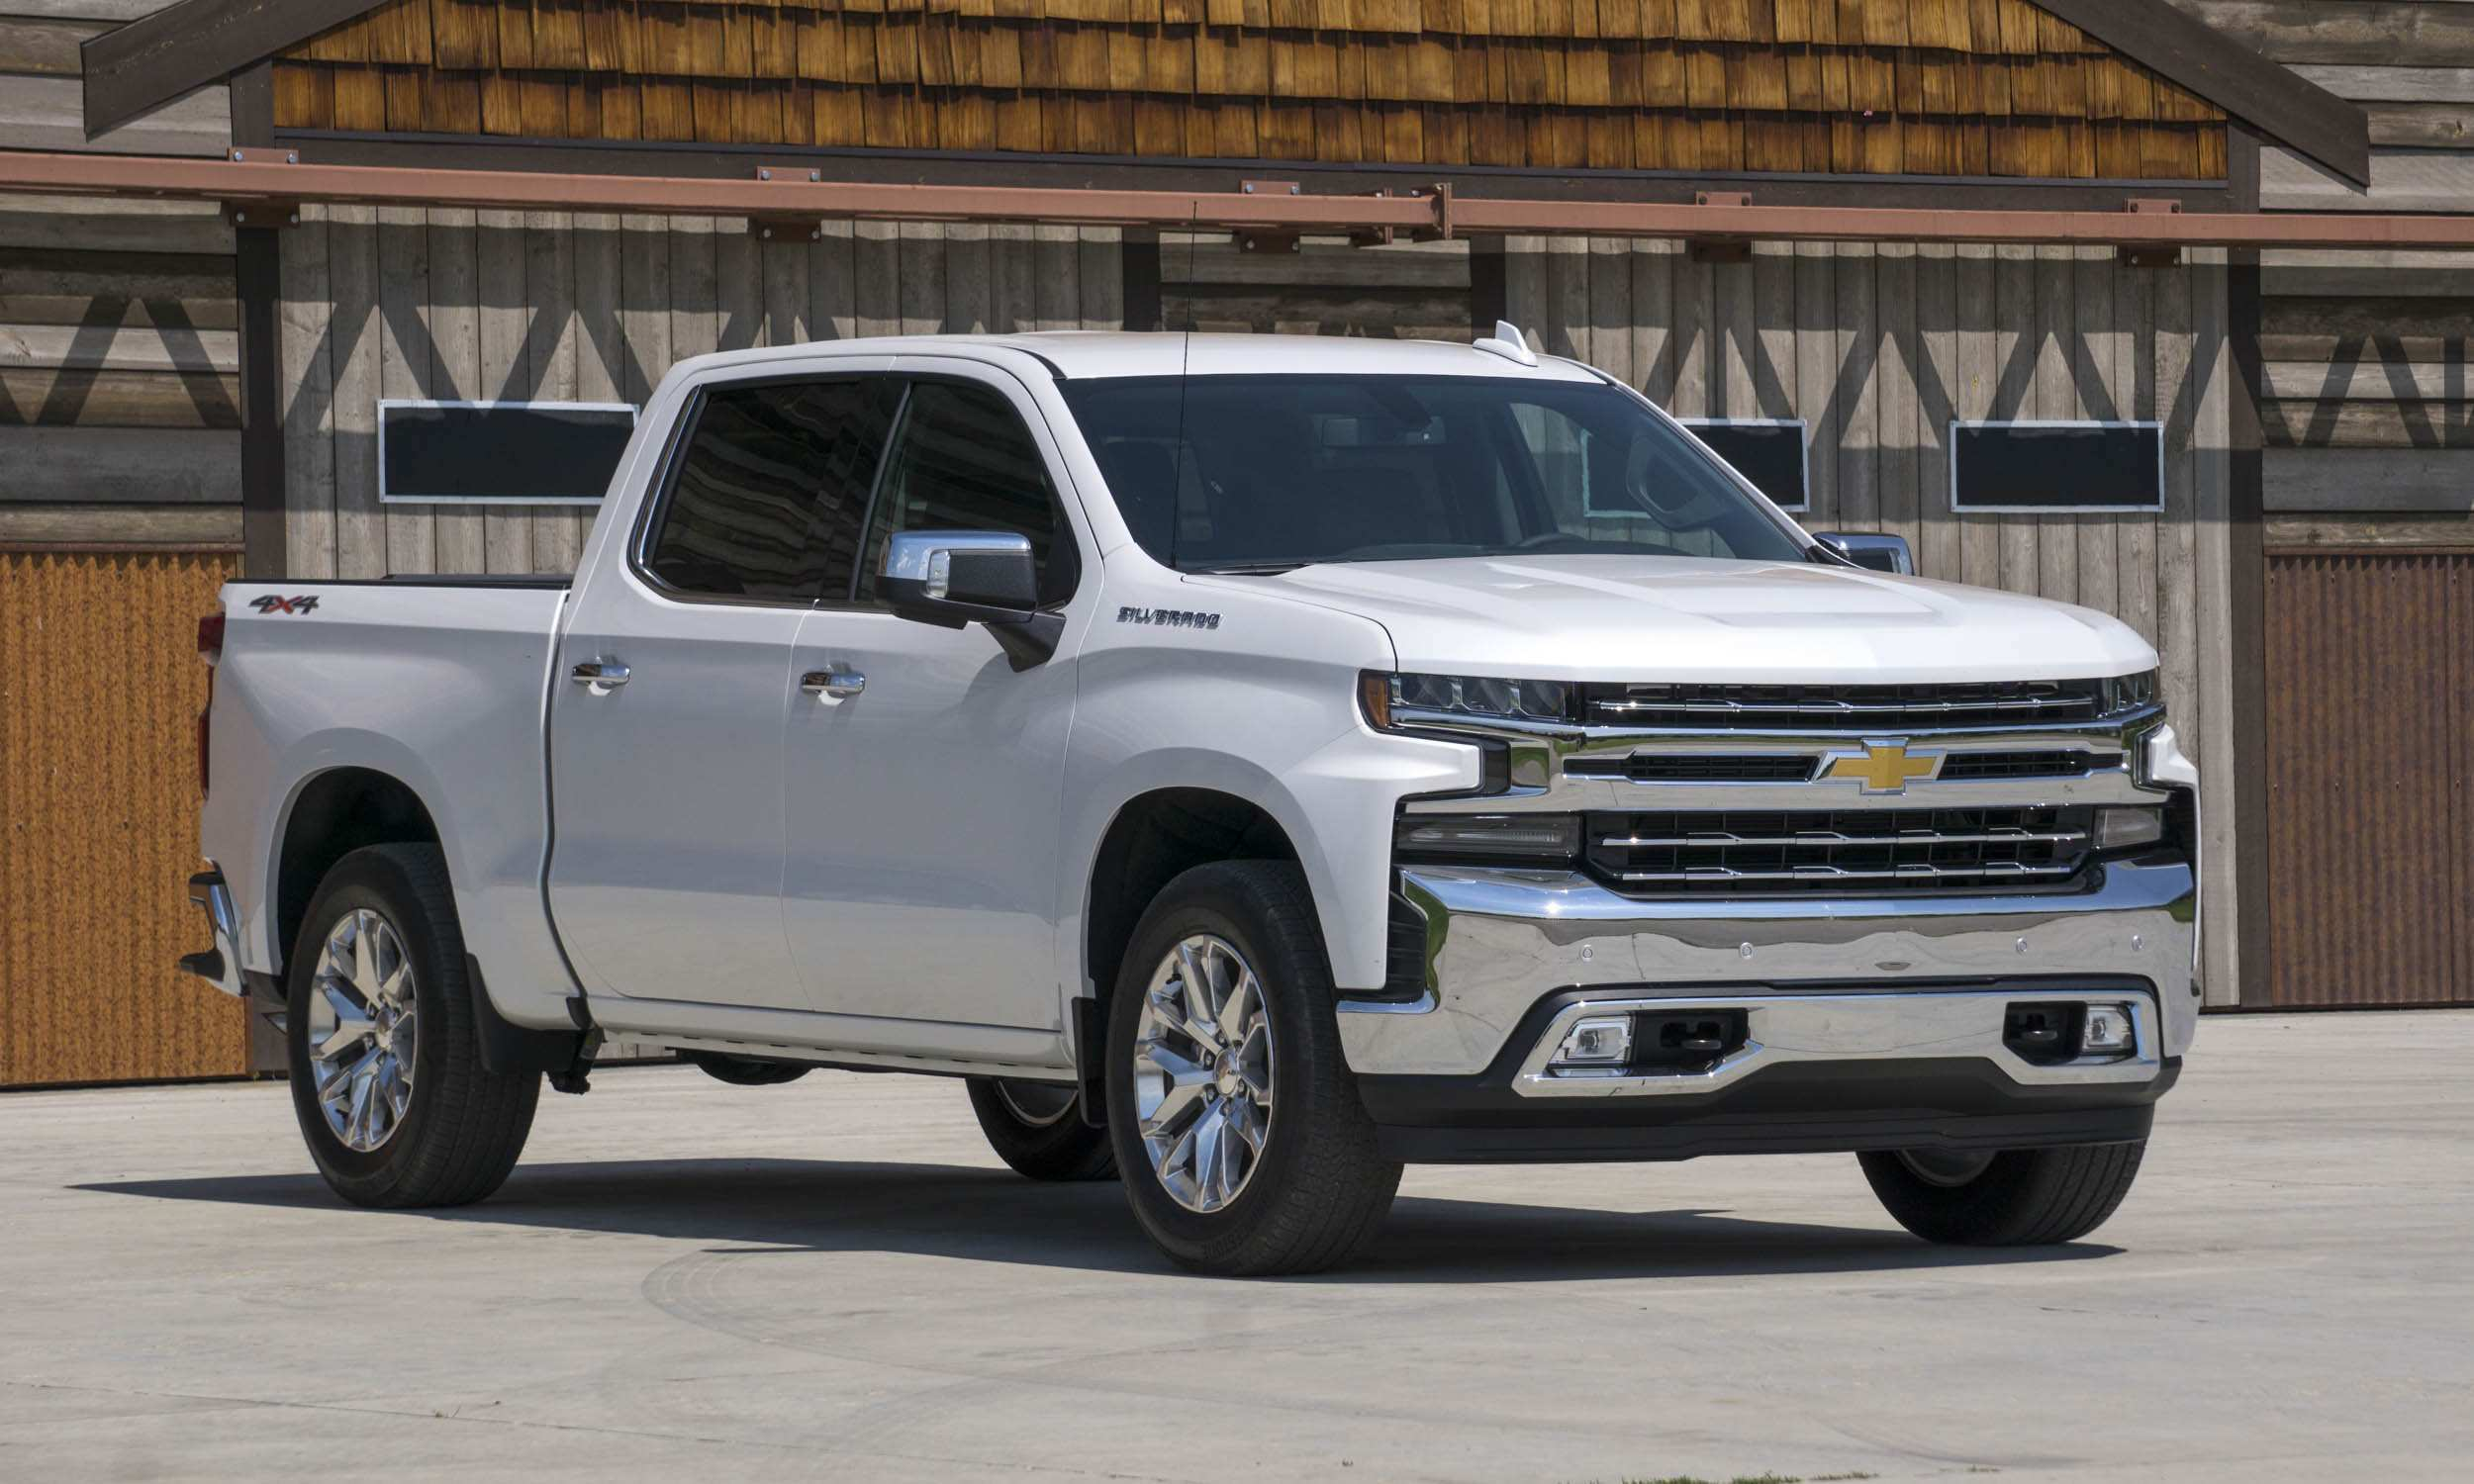 44 All New The Chevrolet Silverado 2019 Diesel First Drive New Concept for The Chevrolet Silverado 2019 Diesel First Drive